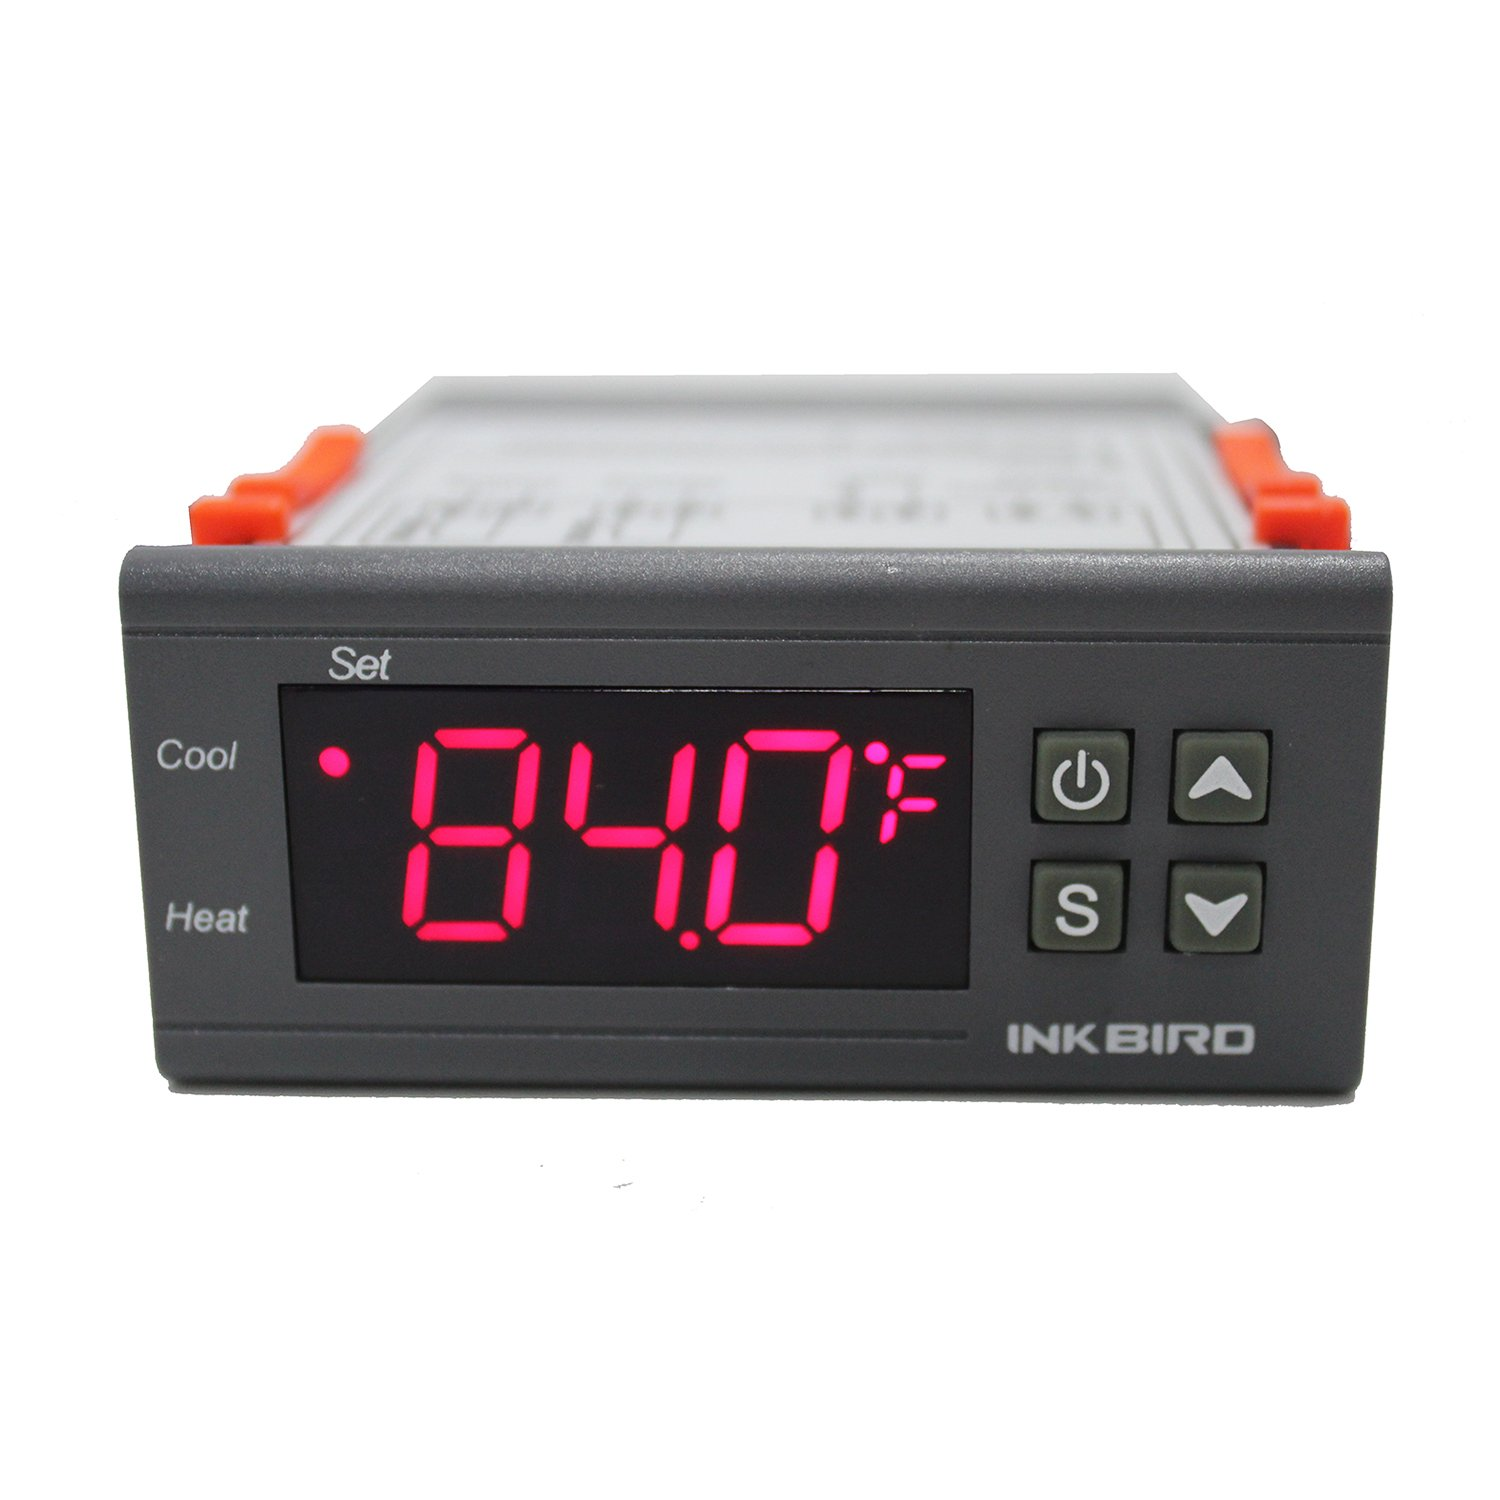 Inkbird ITC-1000F 2 Stage Temperature Controller Cooling and Heating Modes Celsius and Fahrenheit